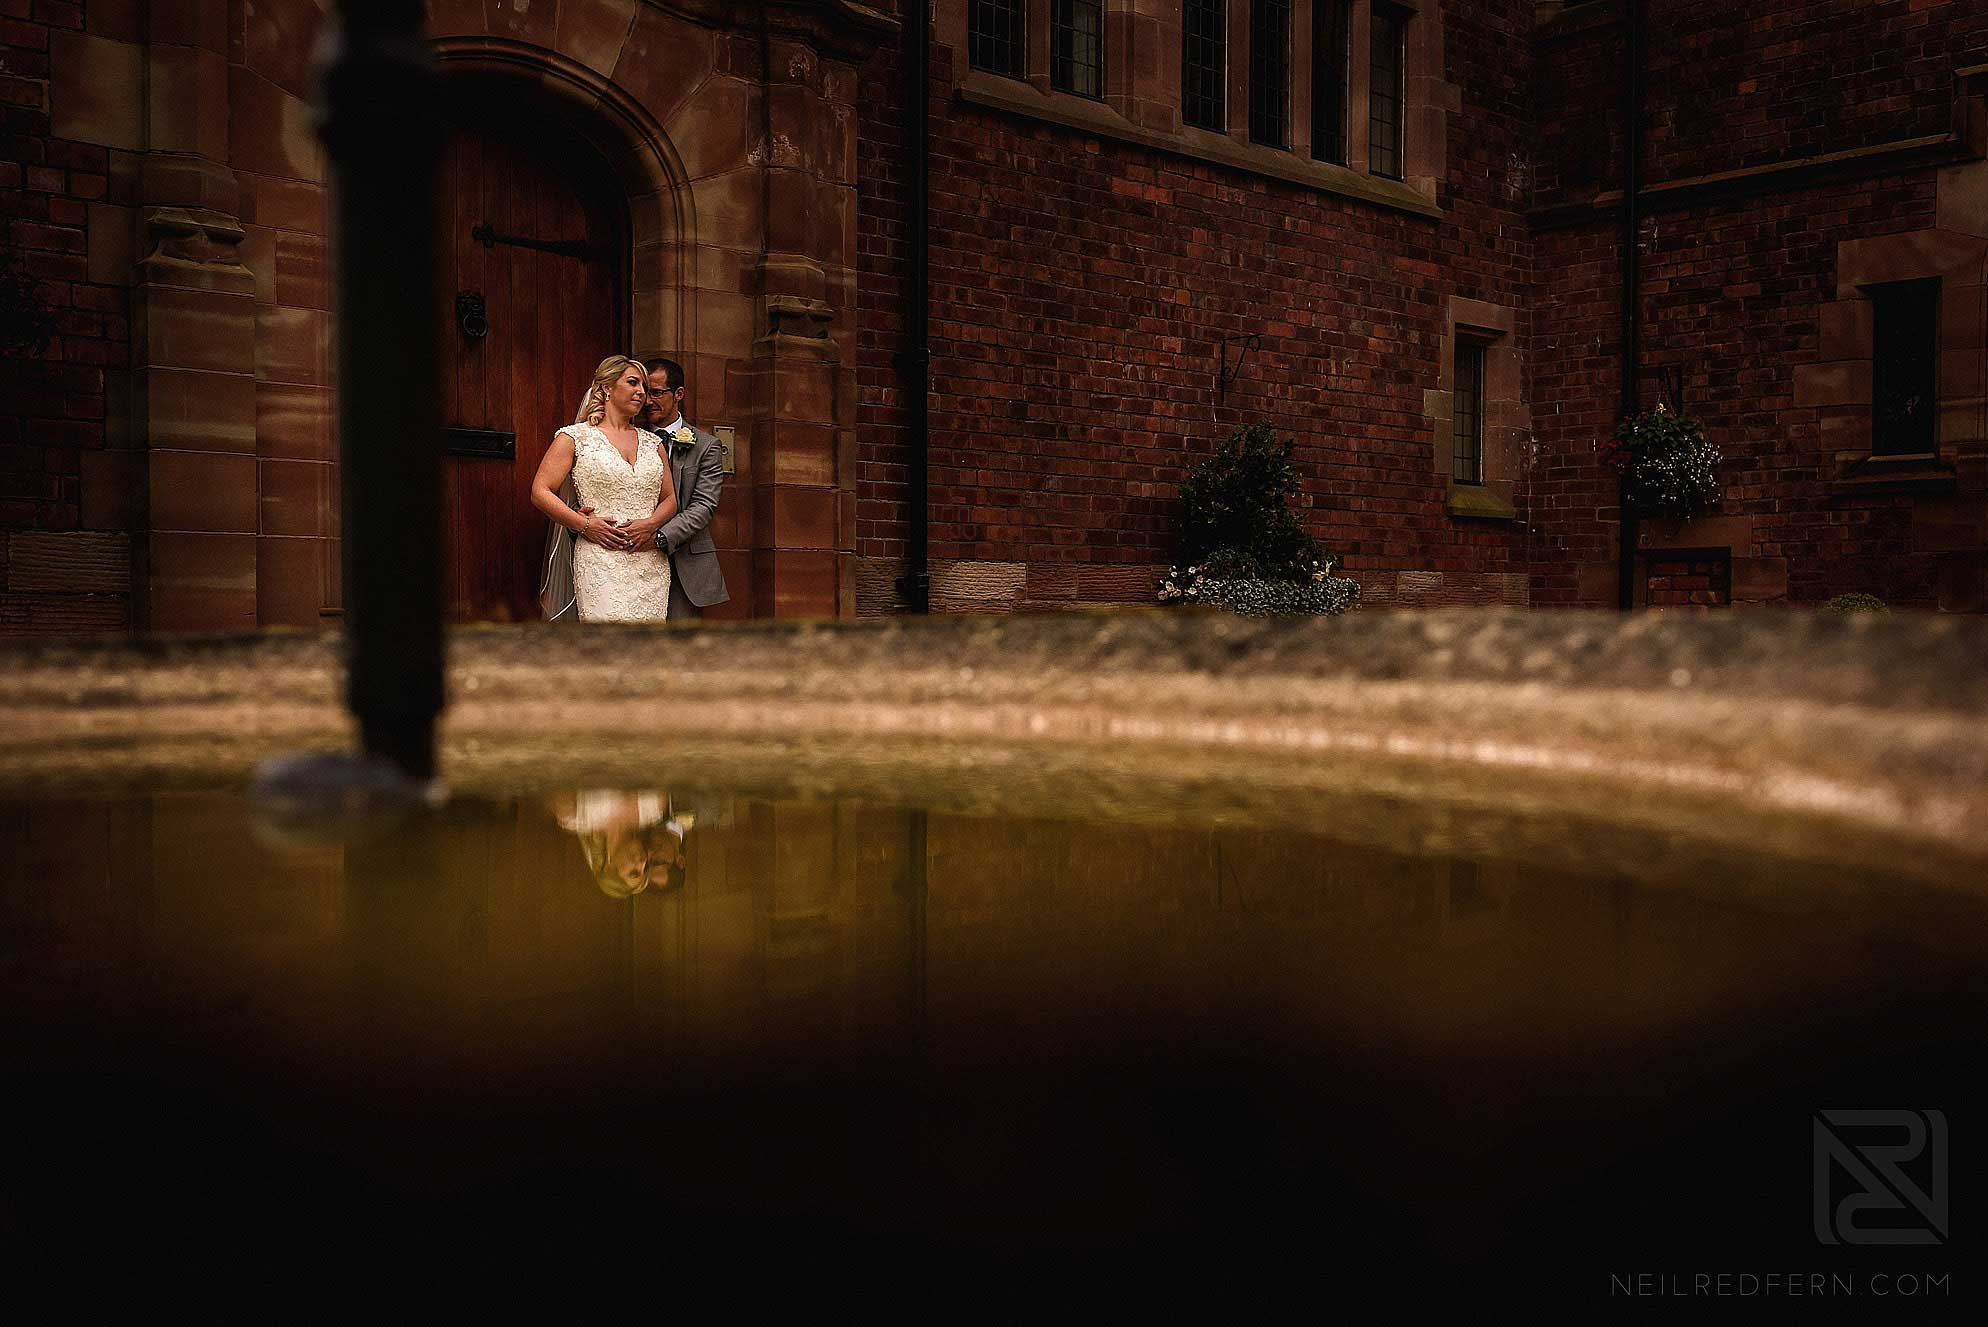 reflection of bride and groom in fountain